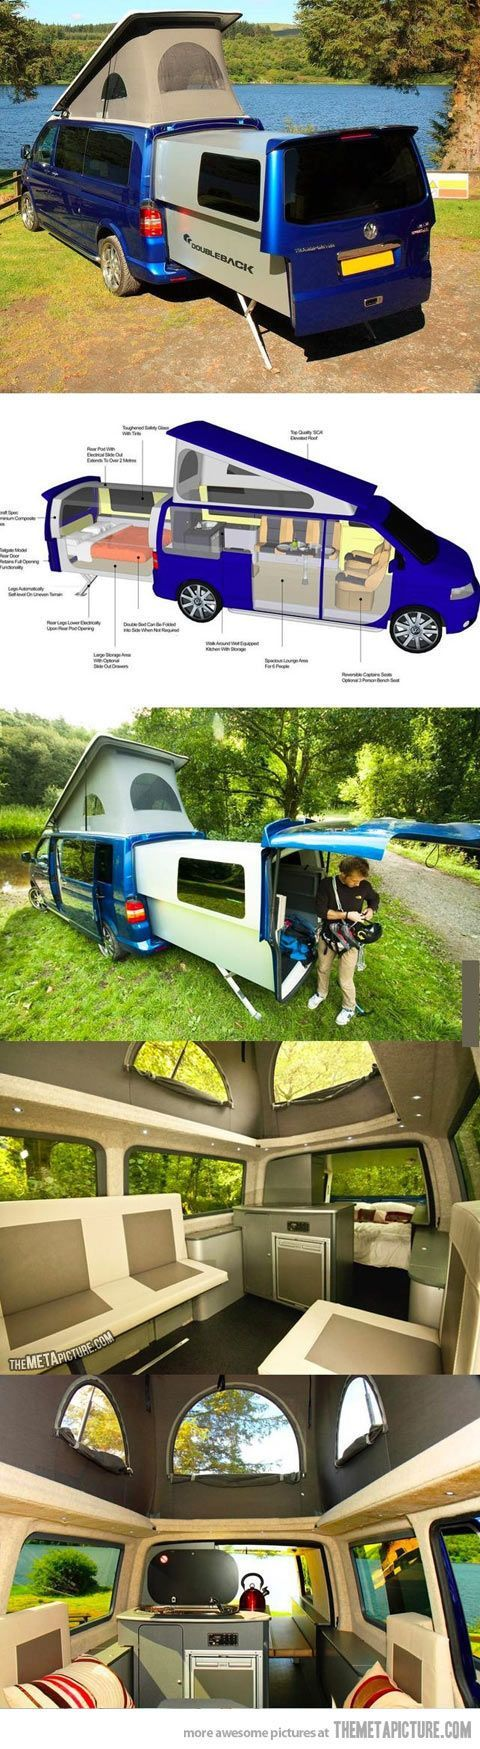 I want to go camping with this! - tomorrows adventures